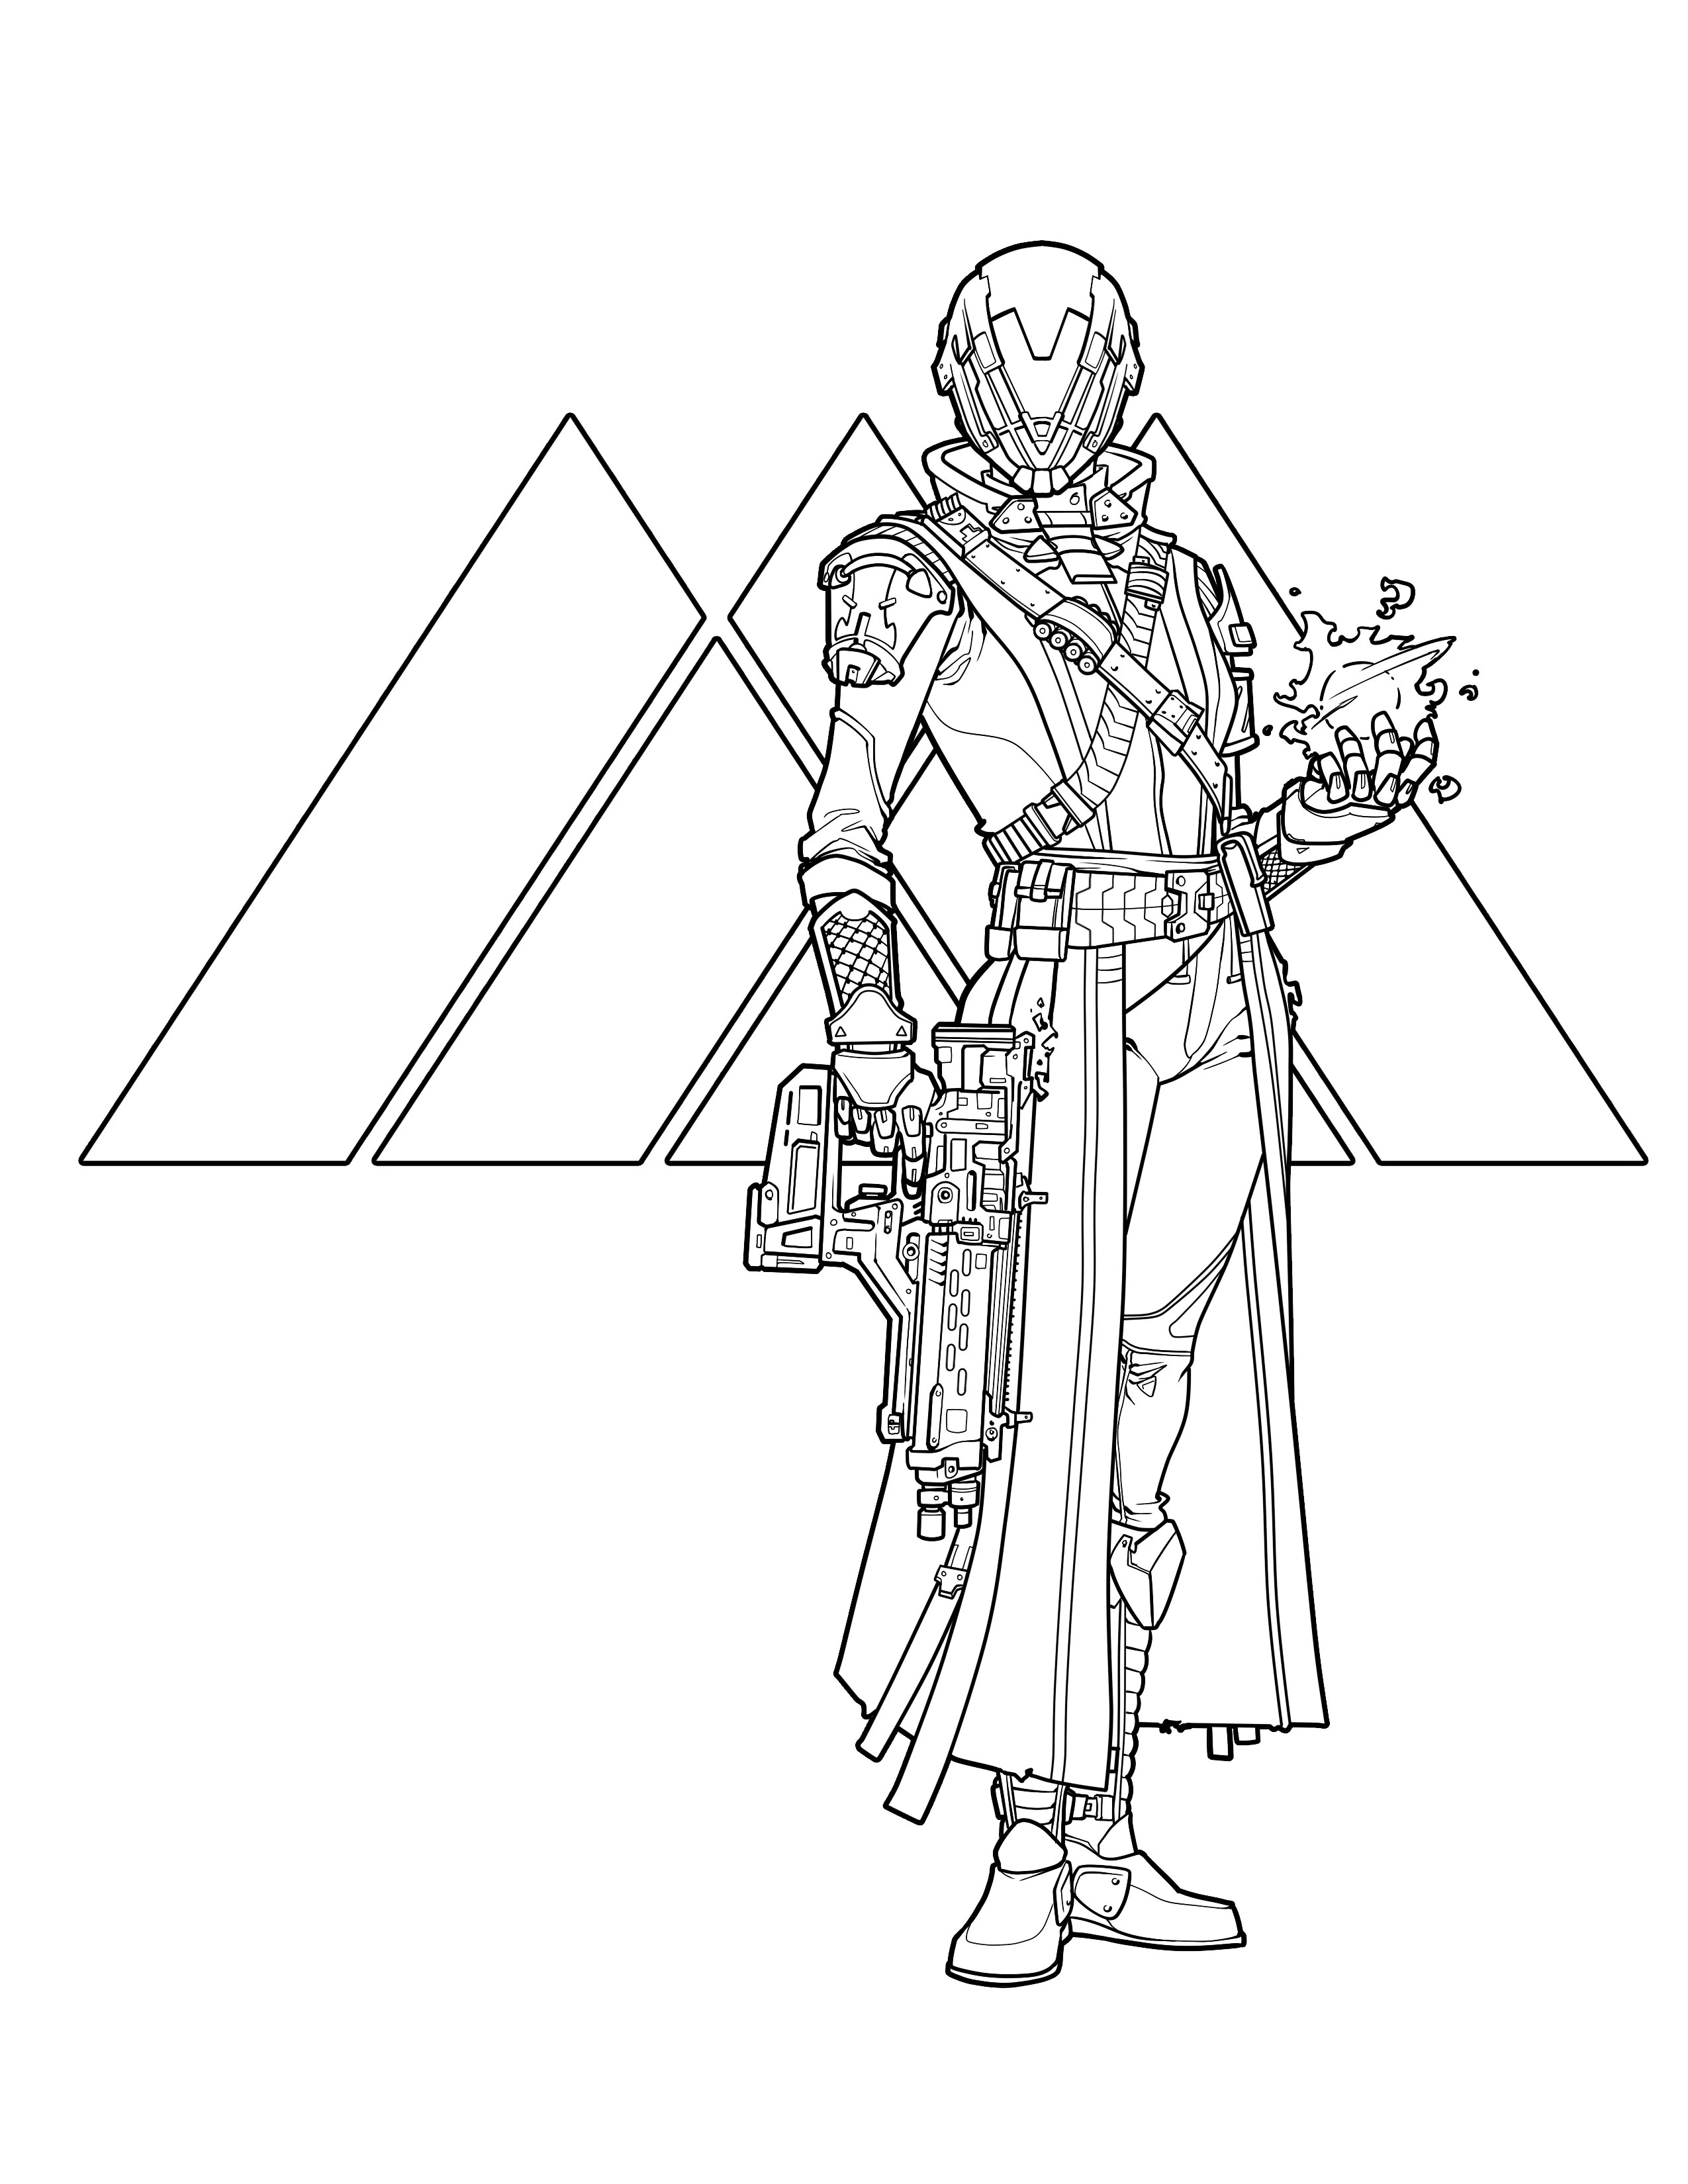 Official Destiny Colouring Book Looks More Relaxing Than